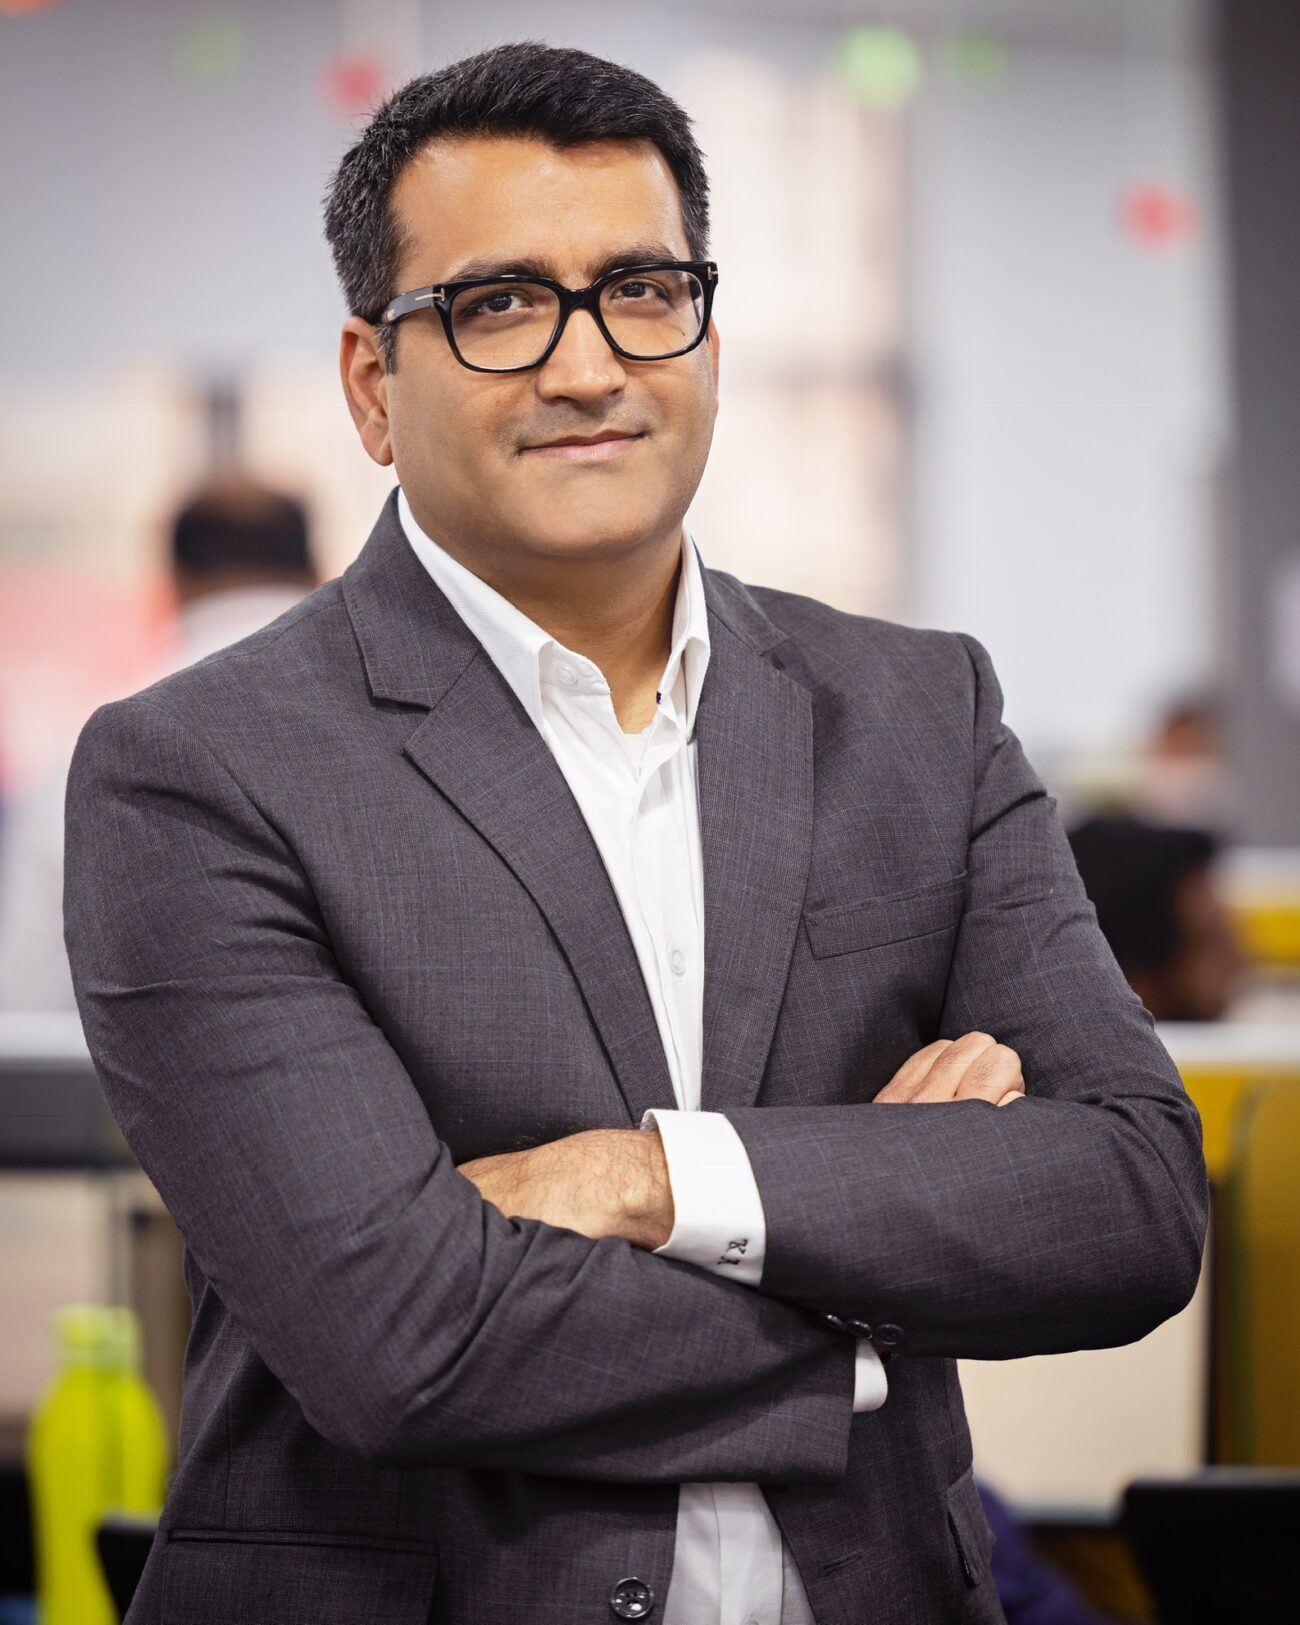 Kartik Anand is a successful business manager and the chairman of KGV Group Ventures. Learn more about Anand here.